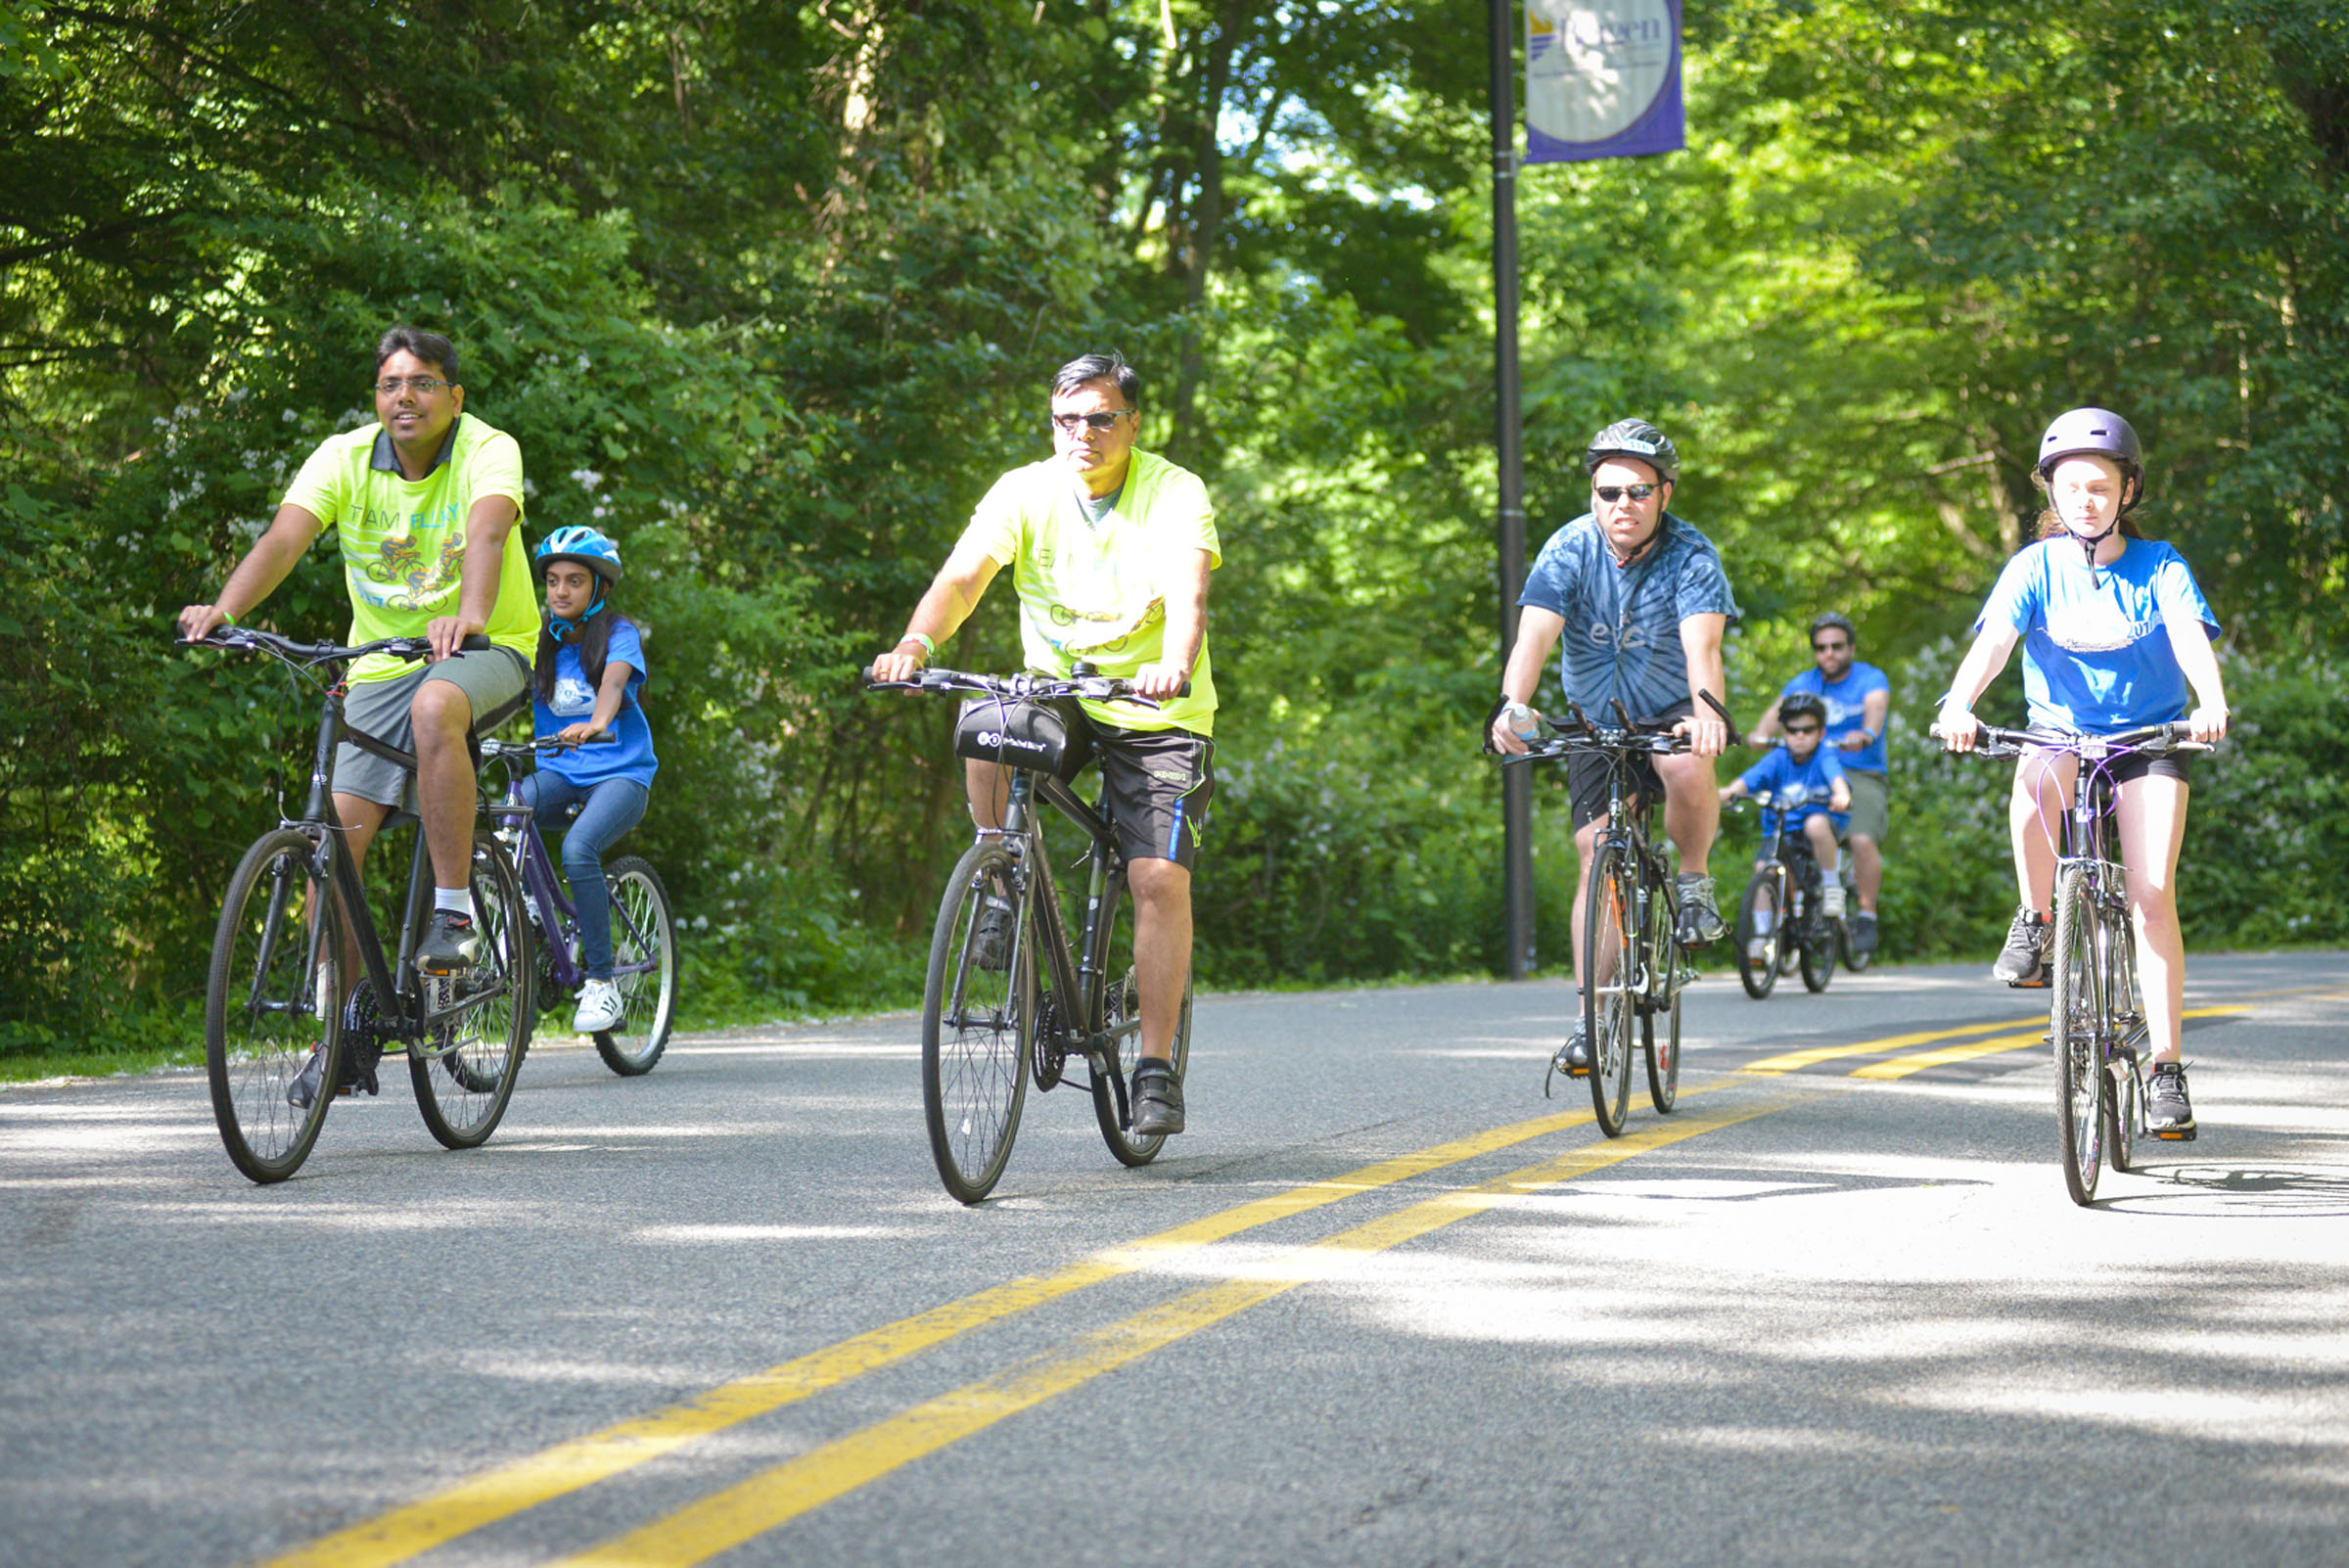 2017-06-04 GTD4A Charity Bike Ride - BCC - Paramus NJ-2043.jpg